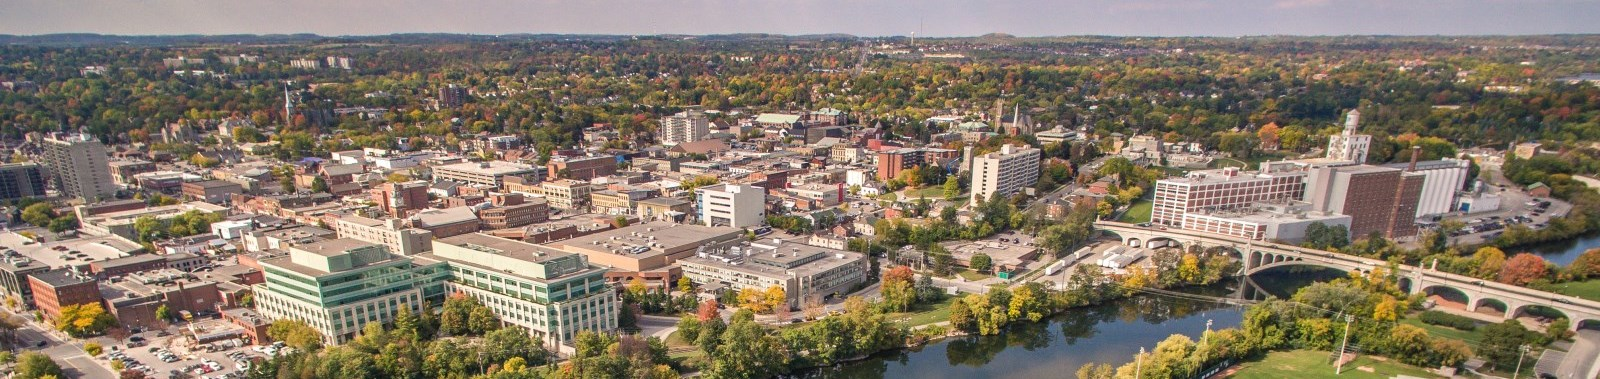 Aerial view of Peterborough